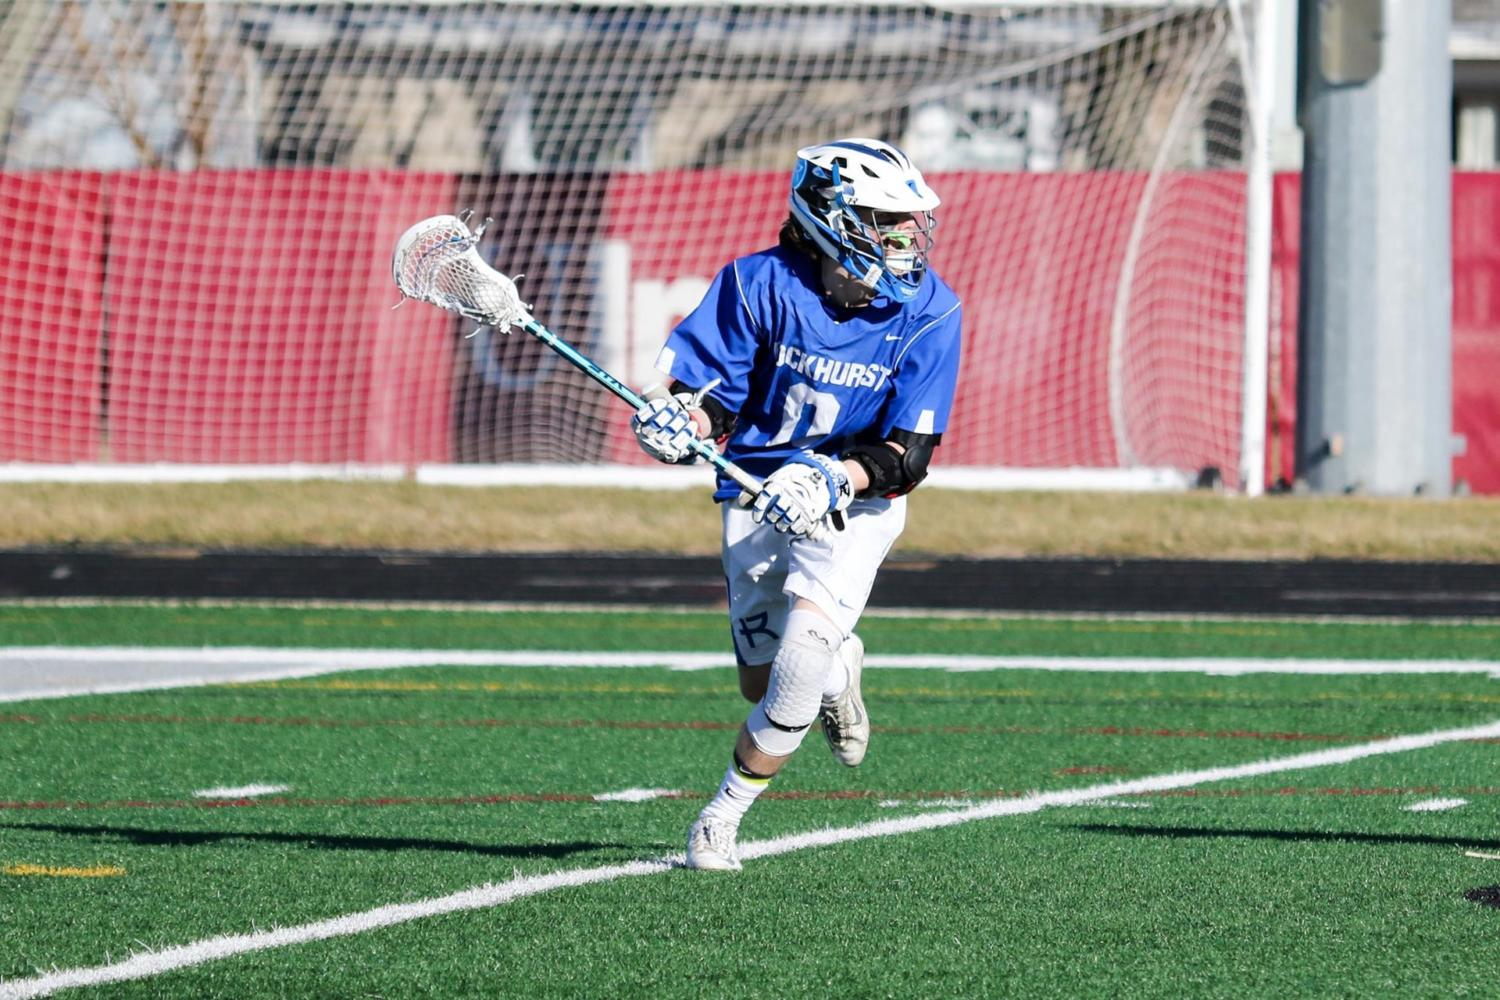 GLVC+introduces+lacrosse%3B+Rockhurst+to+join+in+2019